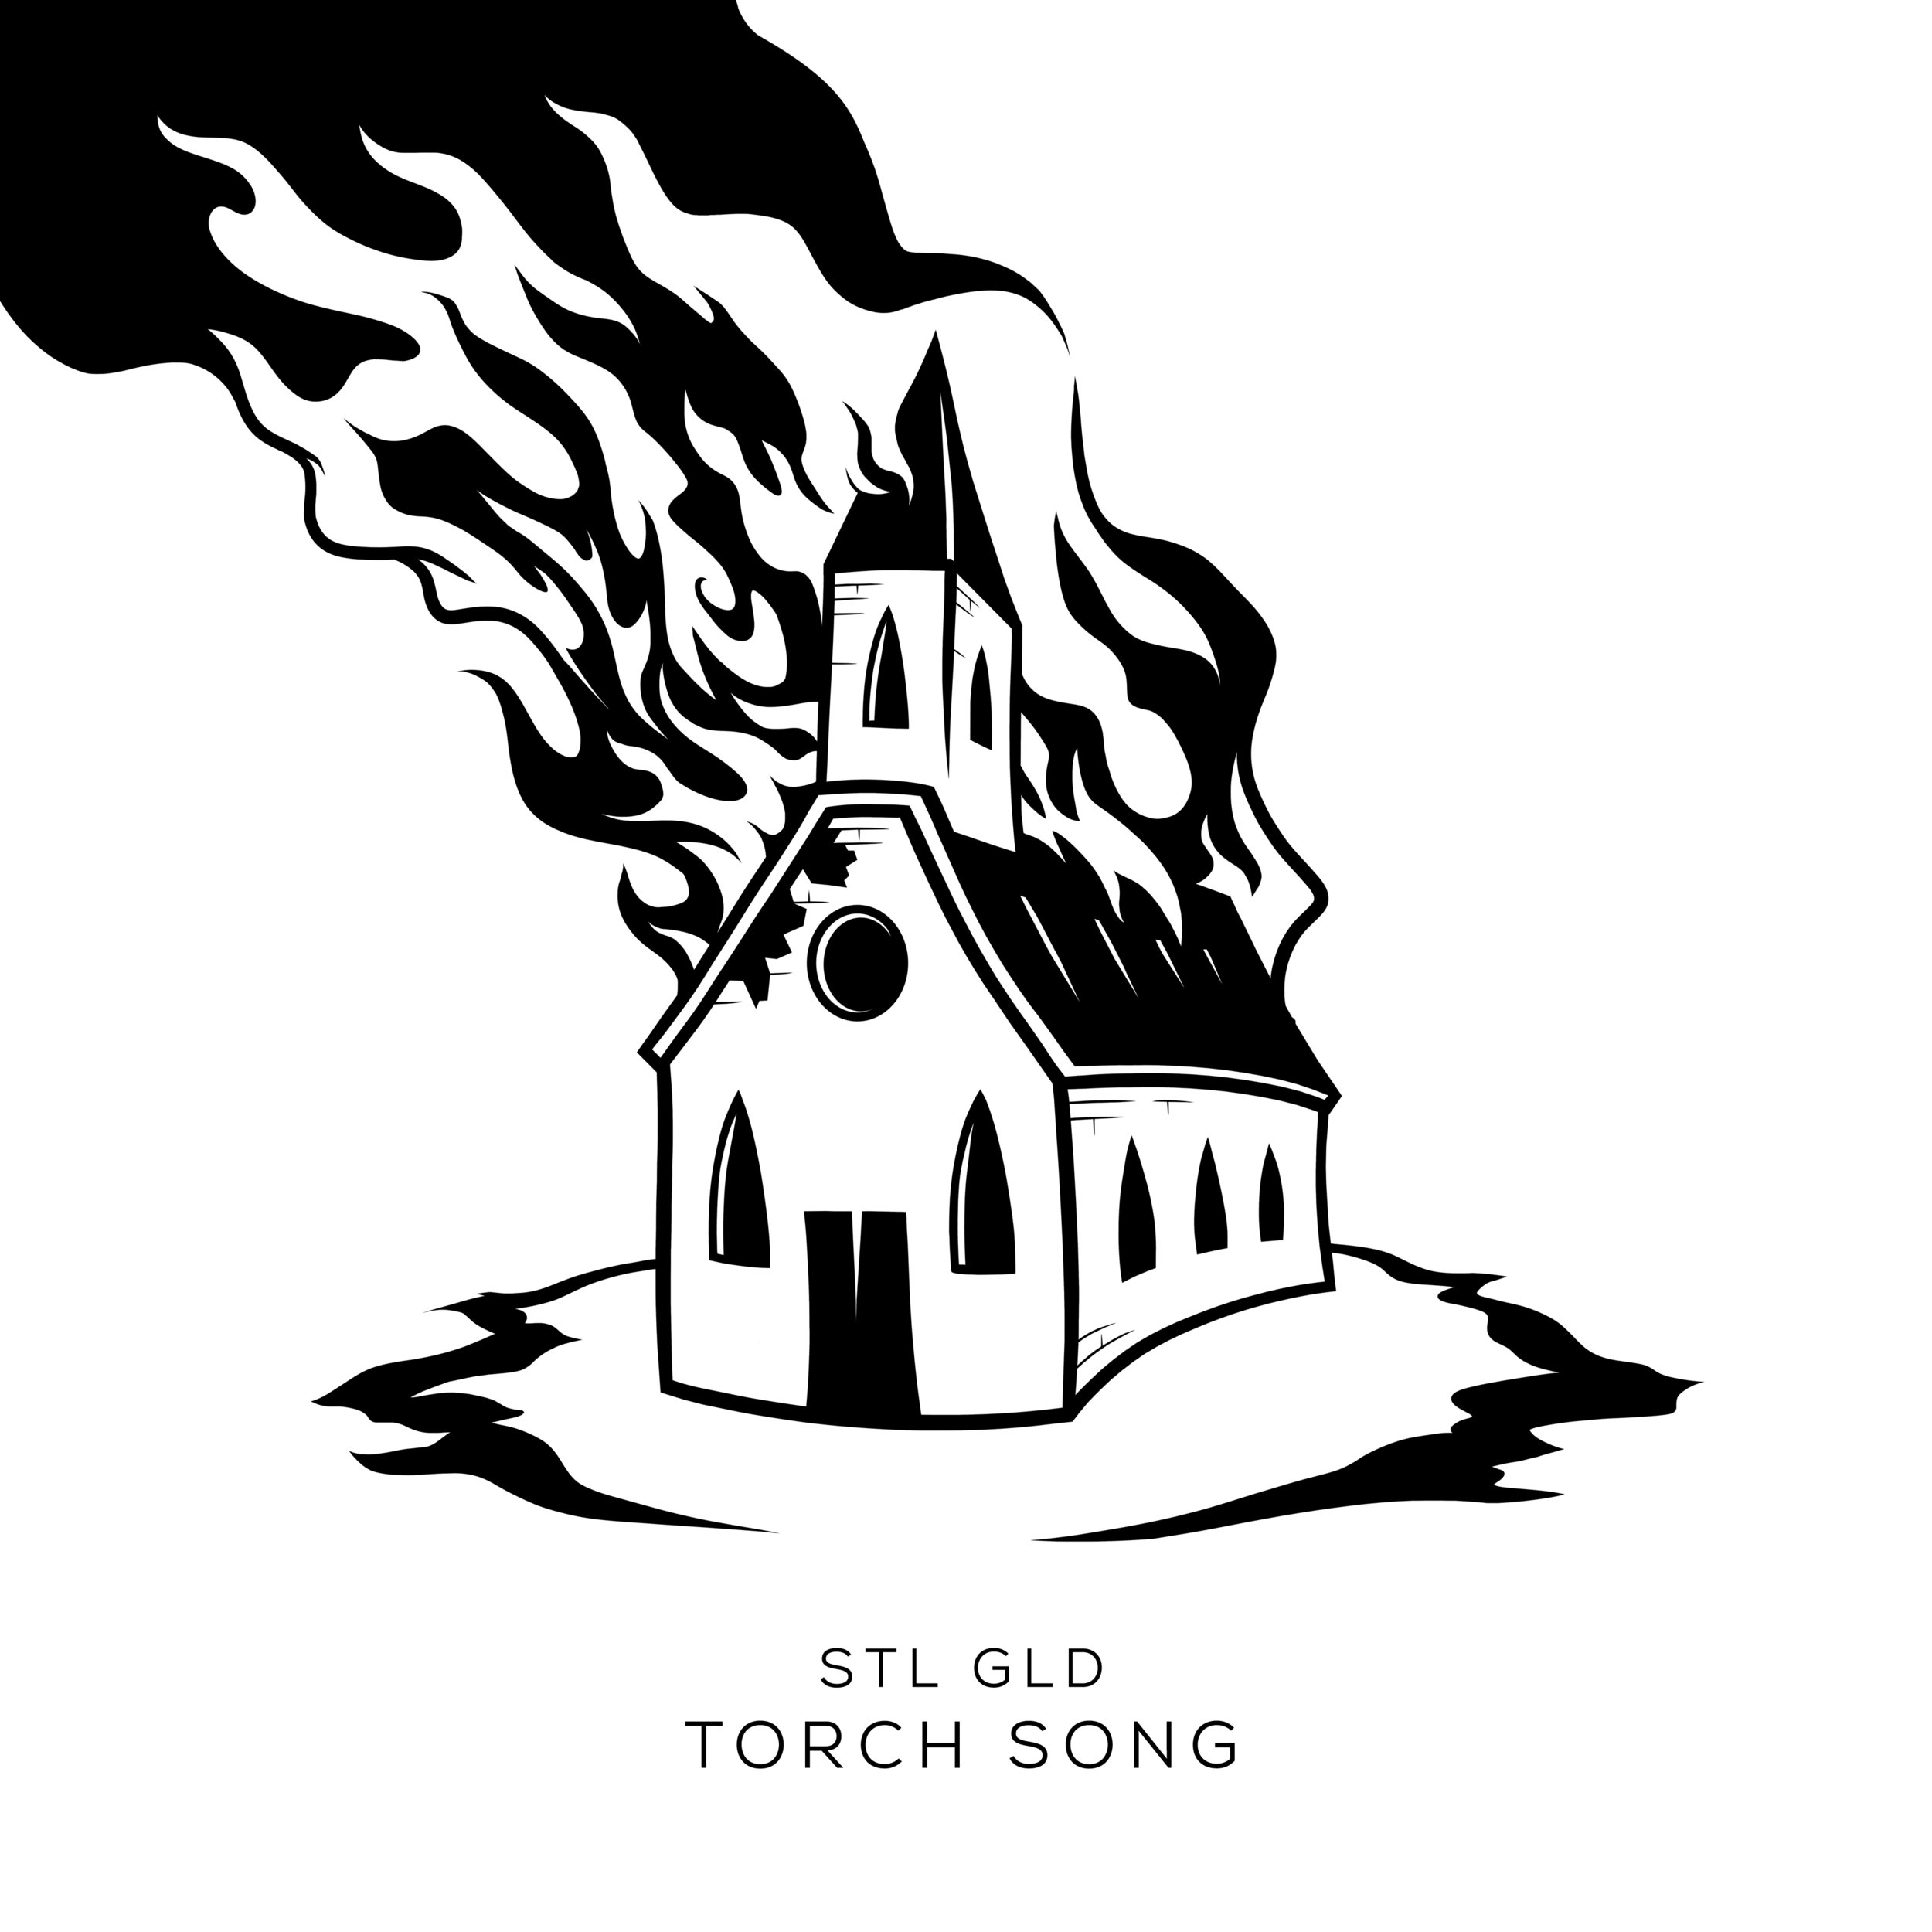 STL GLD - 'Torch Song'